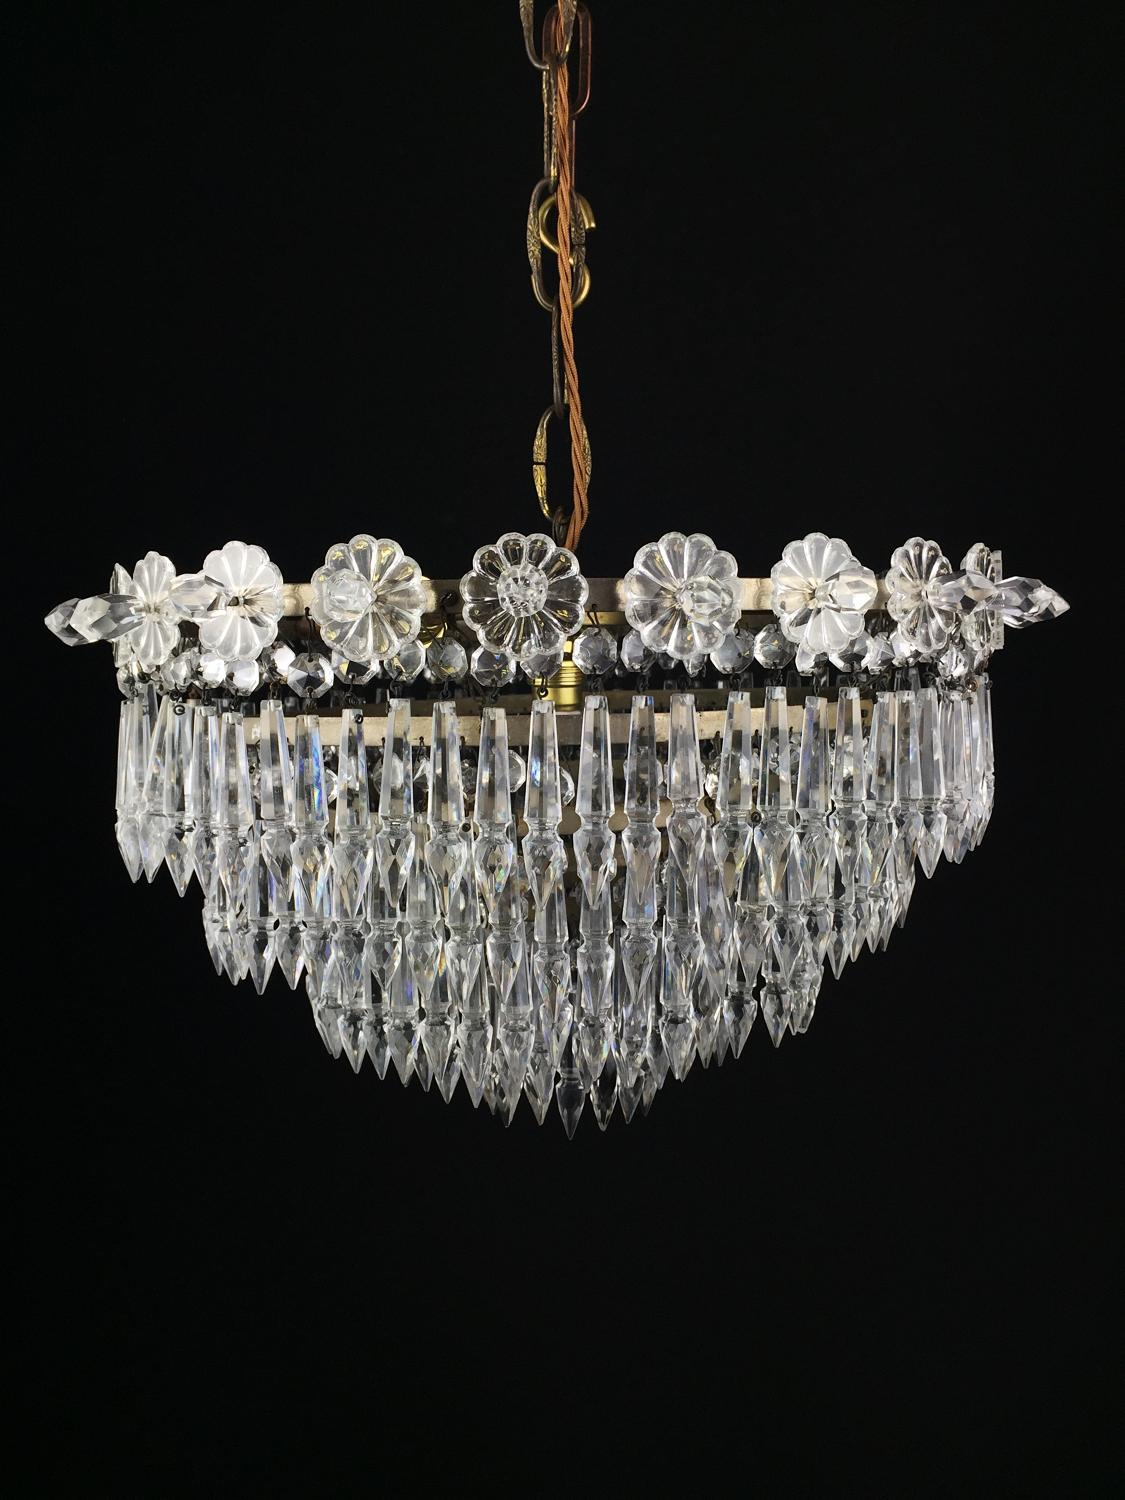 A glass icicle hanging light